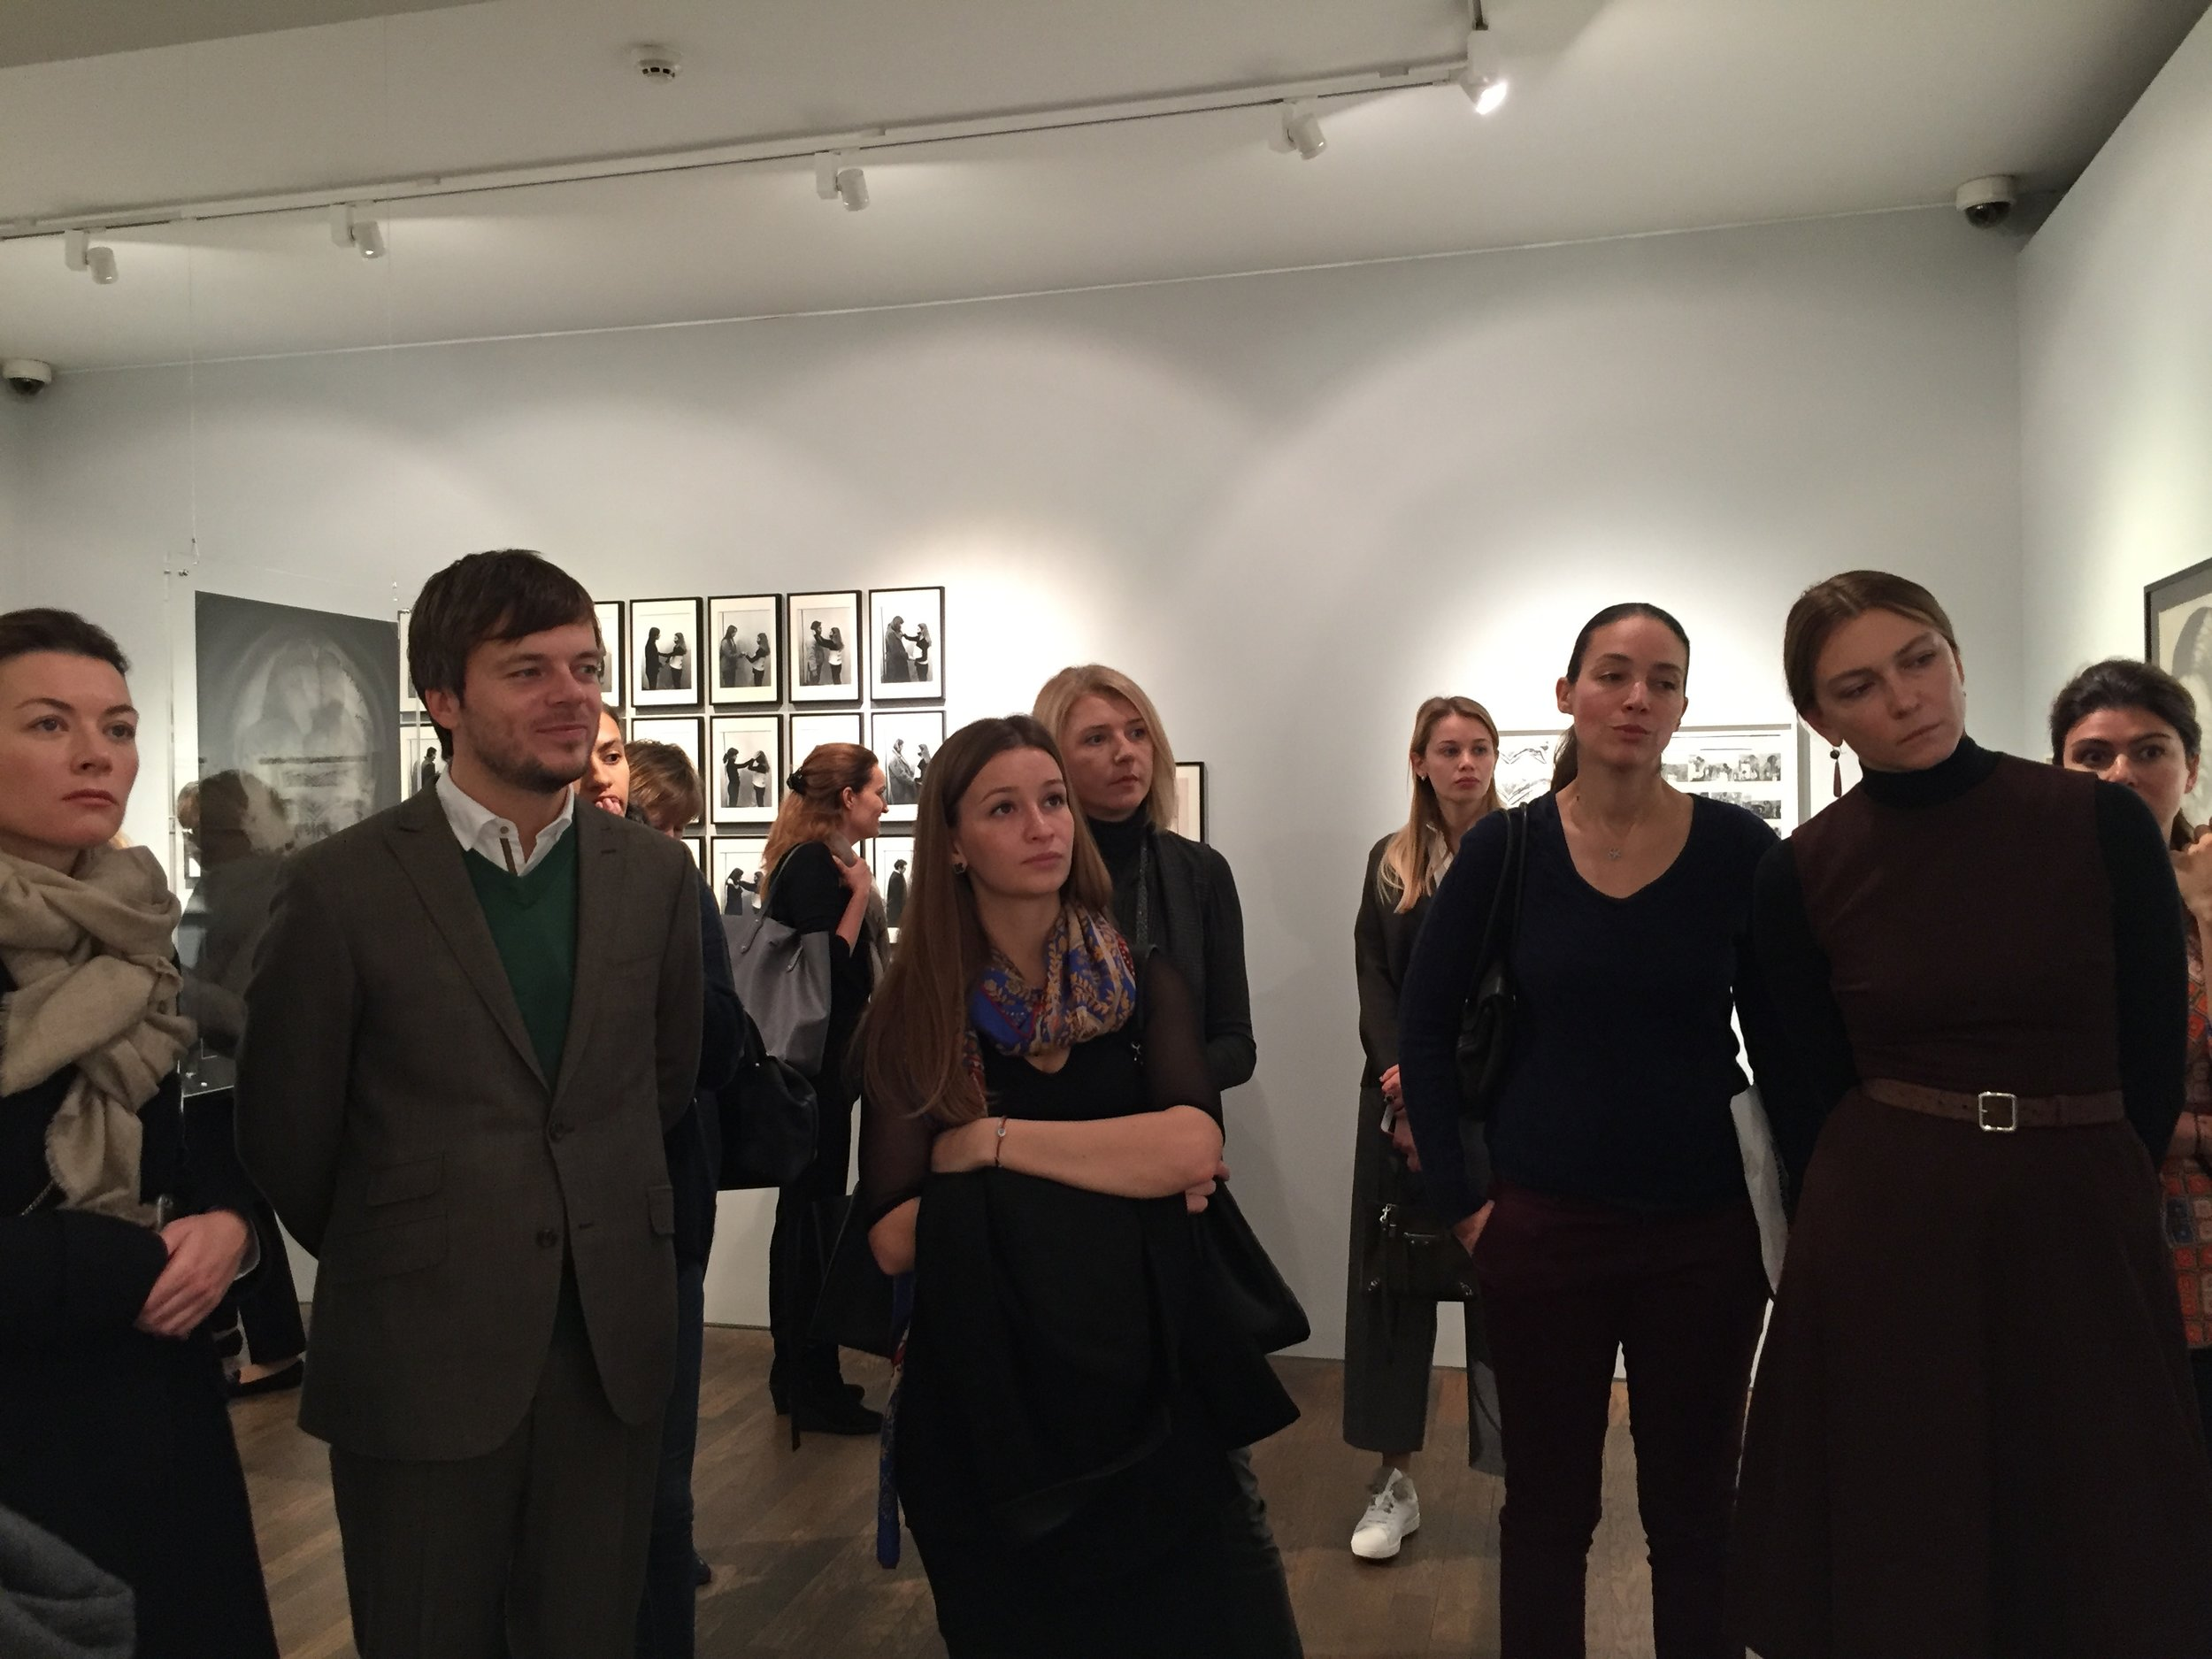 Breakfast with the Director and a private tour of 'Feminist Avant-Garde of the 1970s' exhibition at The Photographers' Gallery